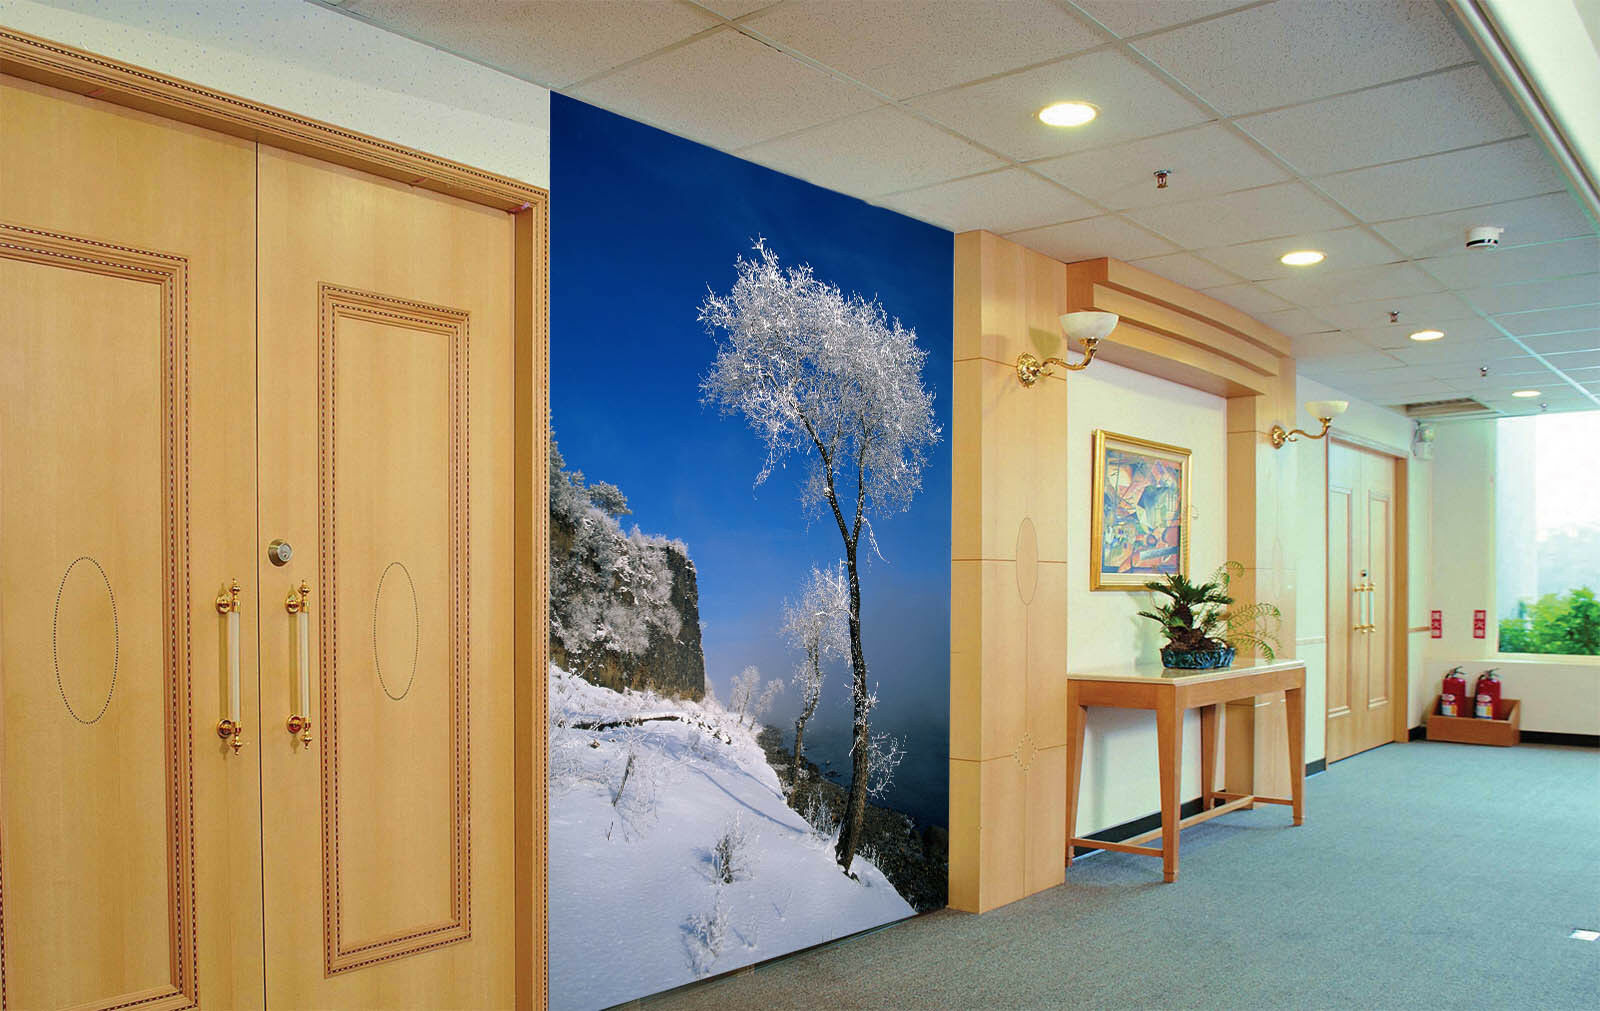 3D Cliff Snow Tree 466 Wall Paper Wall Print Decal Wall Deco Indoor Mural Summer